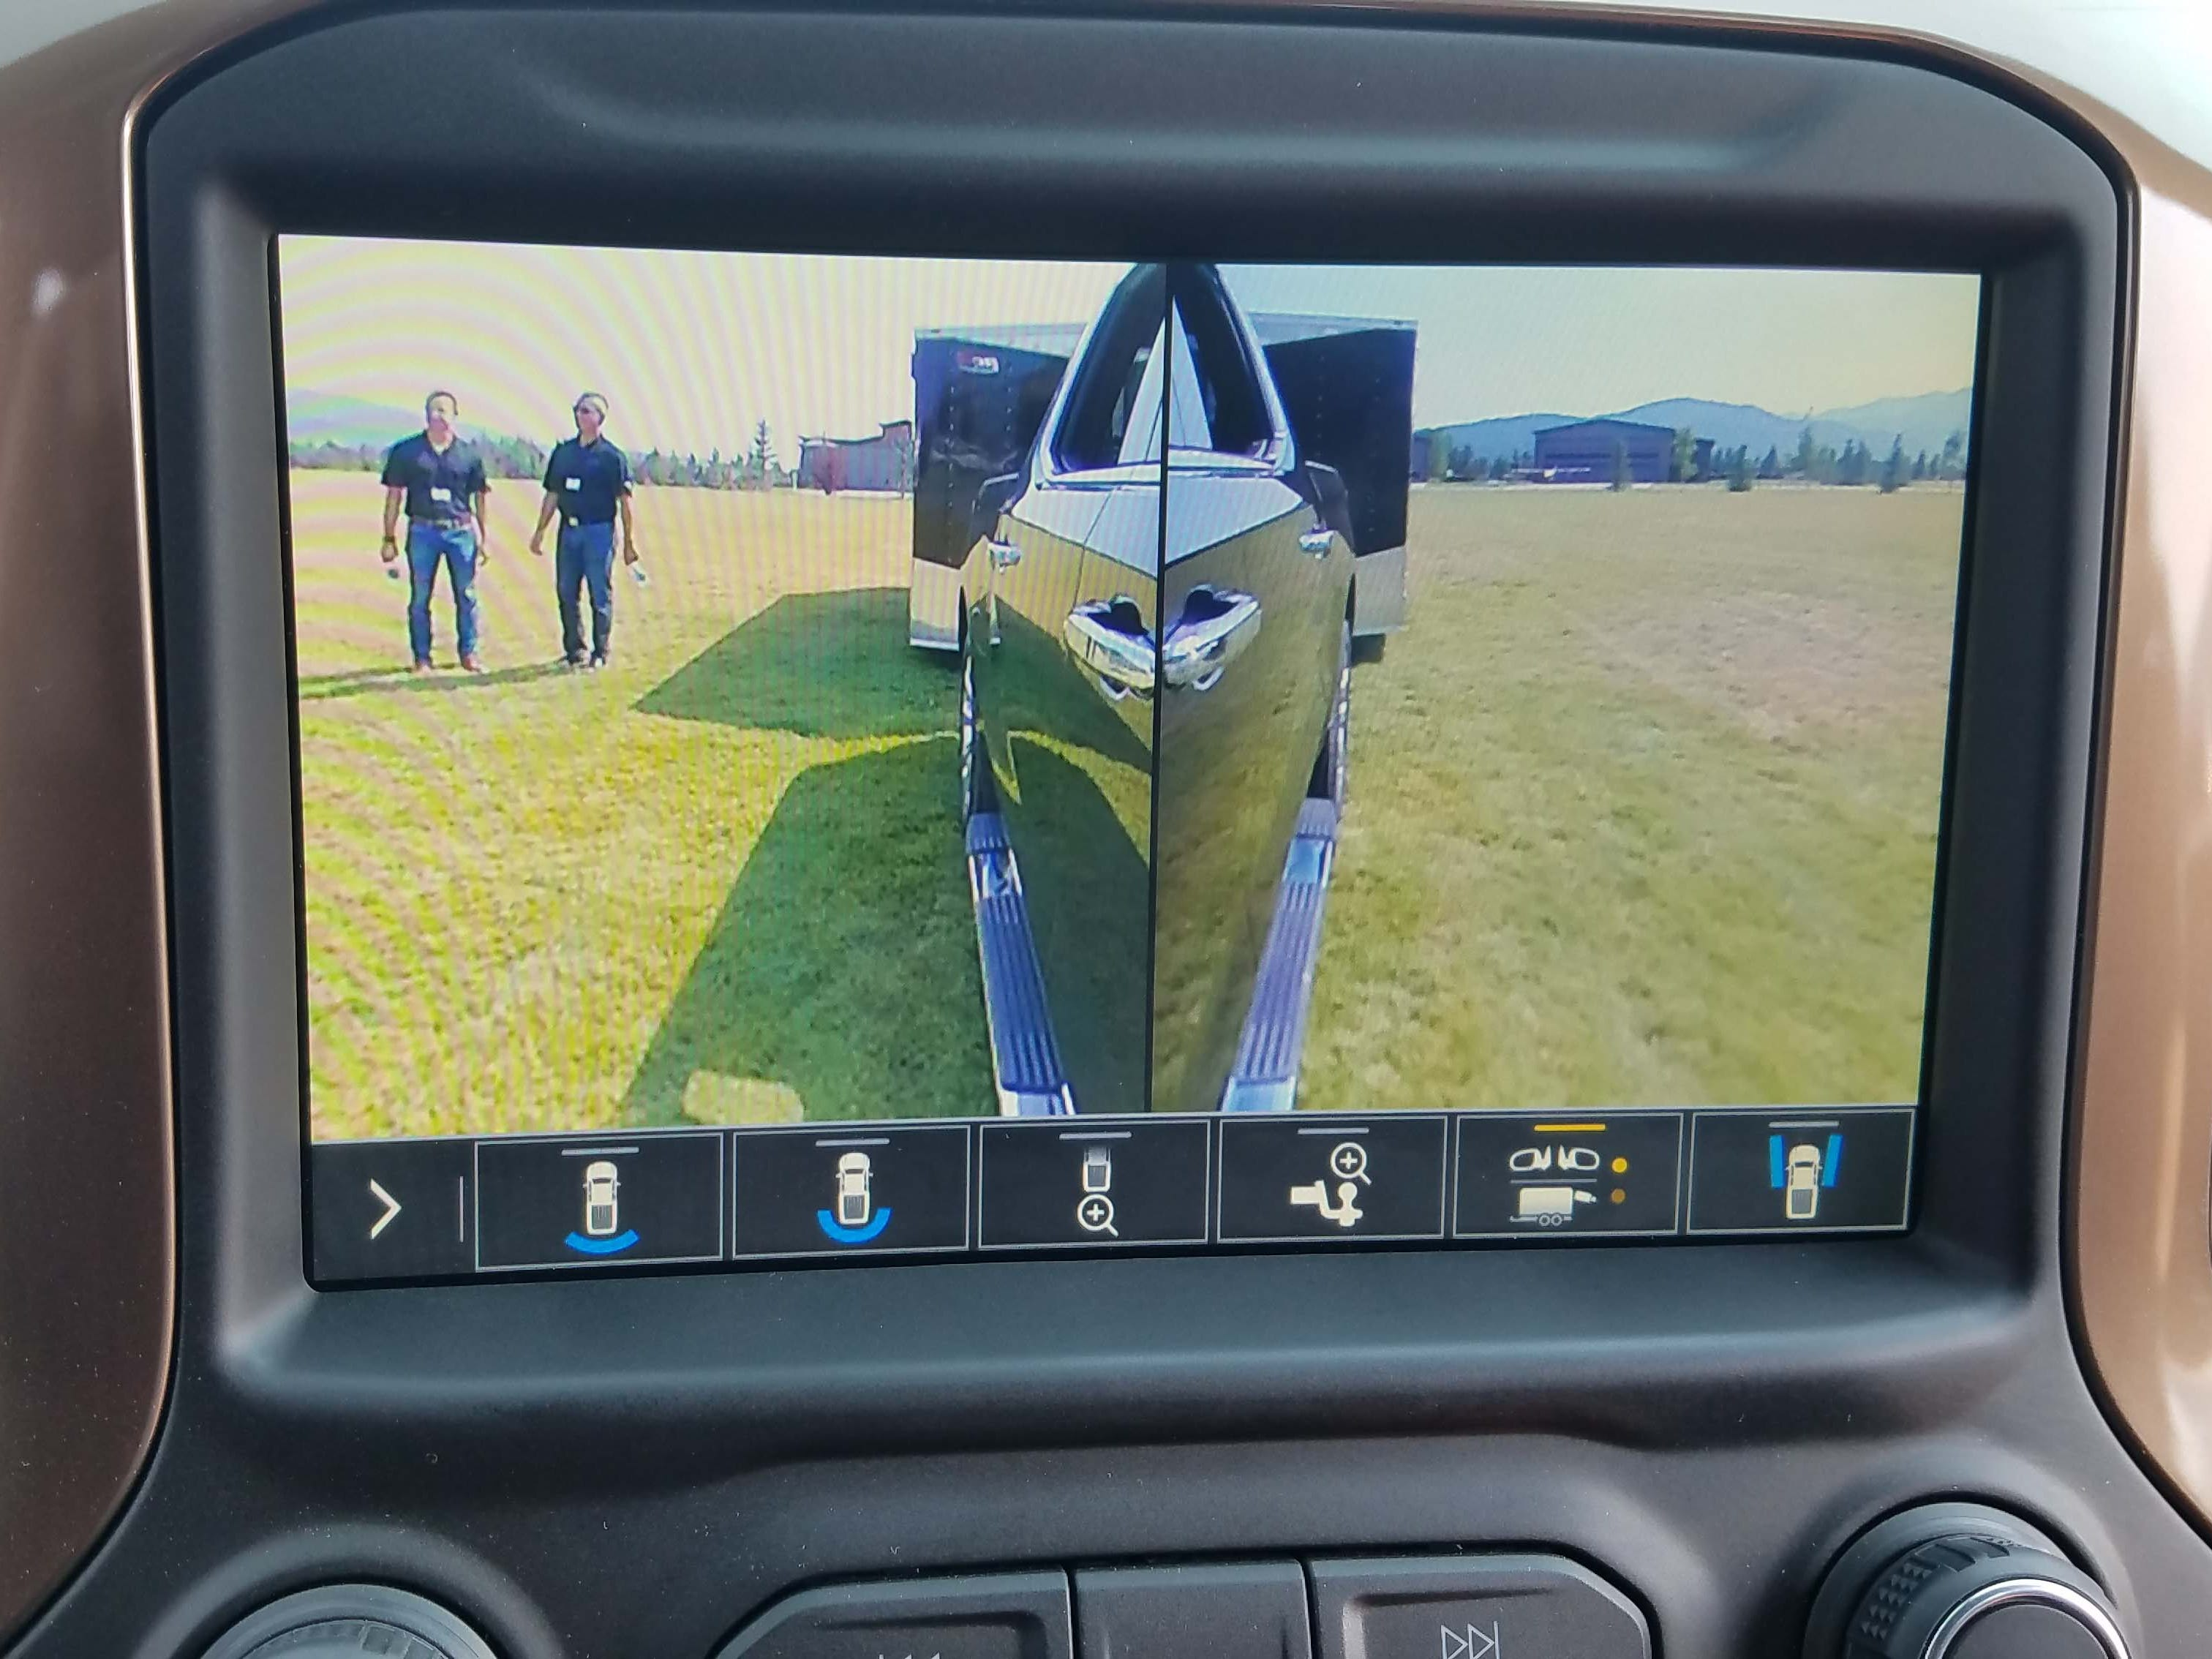 While not challenging Ford's autonomous towing tech, the 2019 Chevy Silverado offers multiple camera views to help with backup chores.